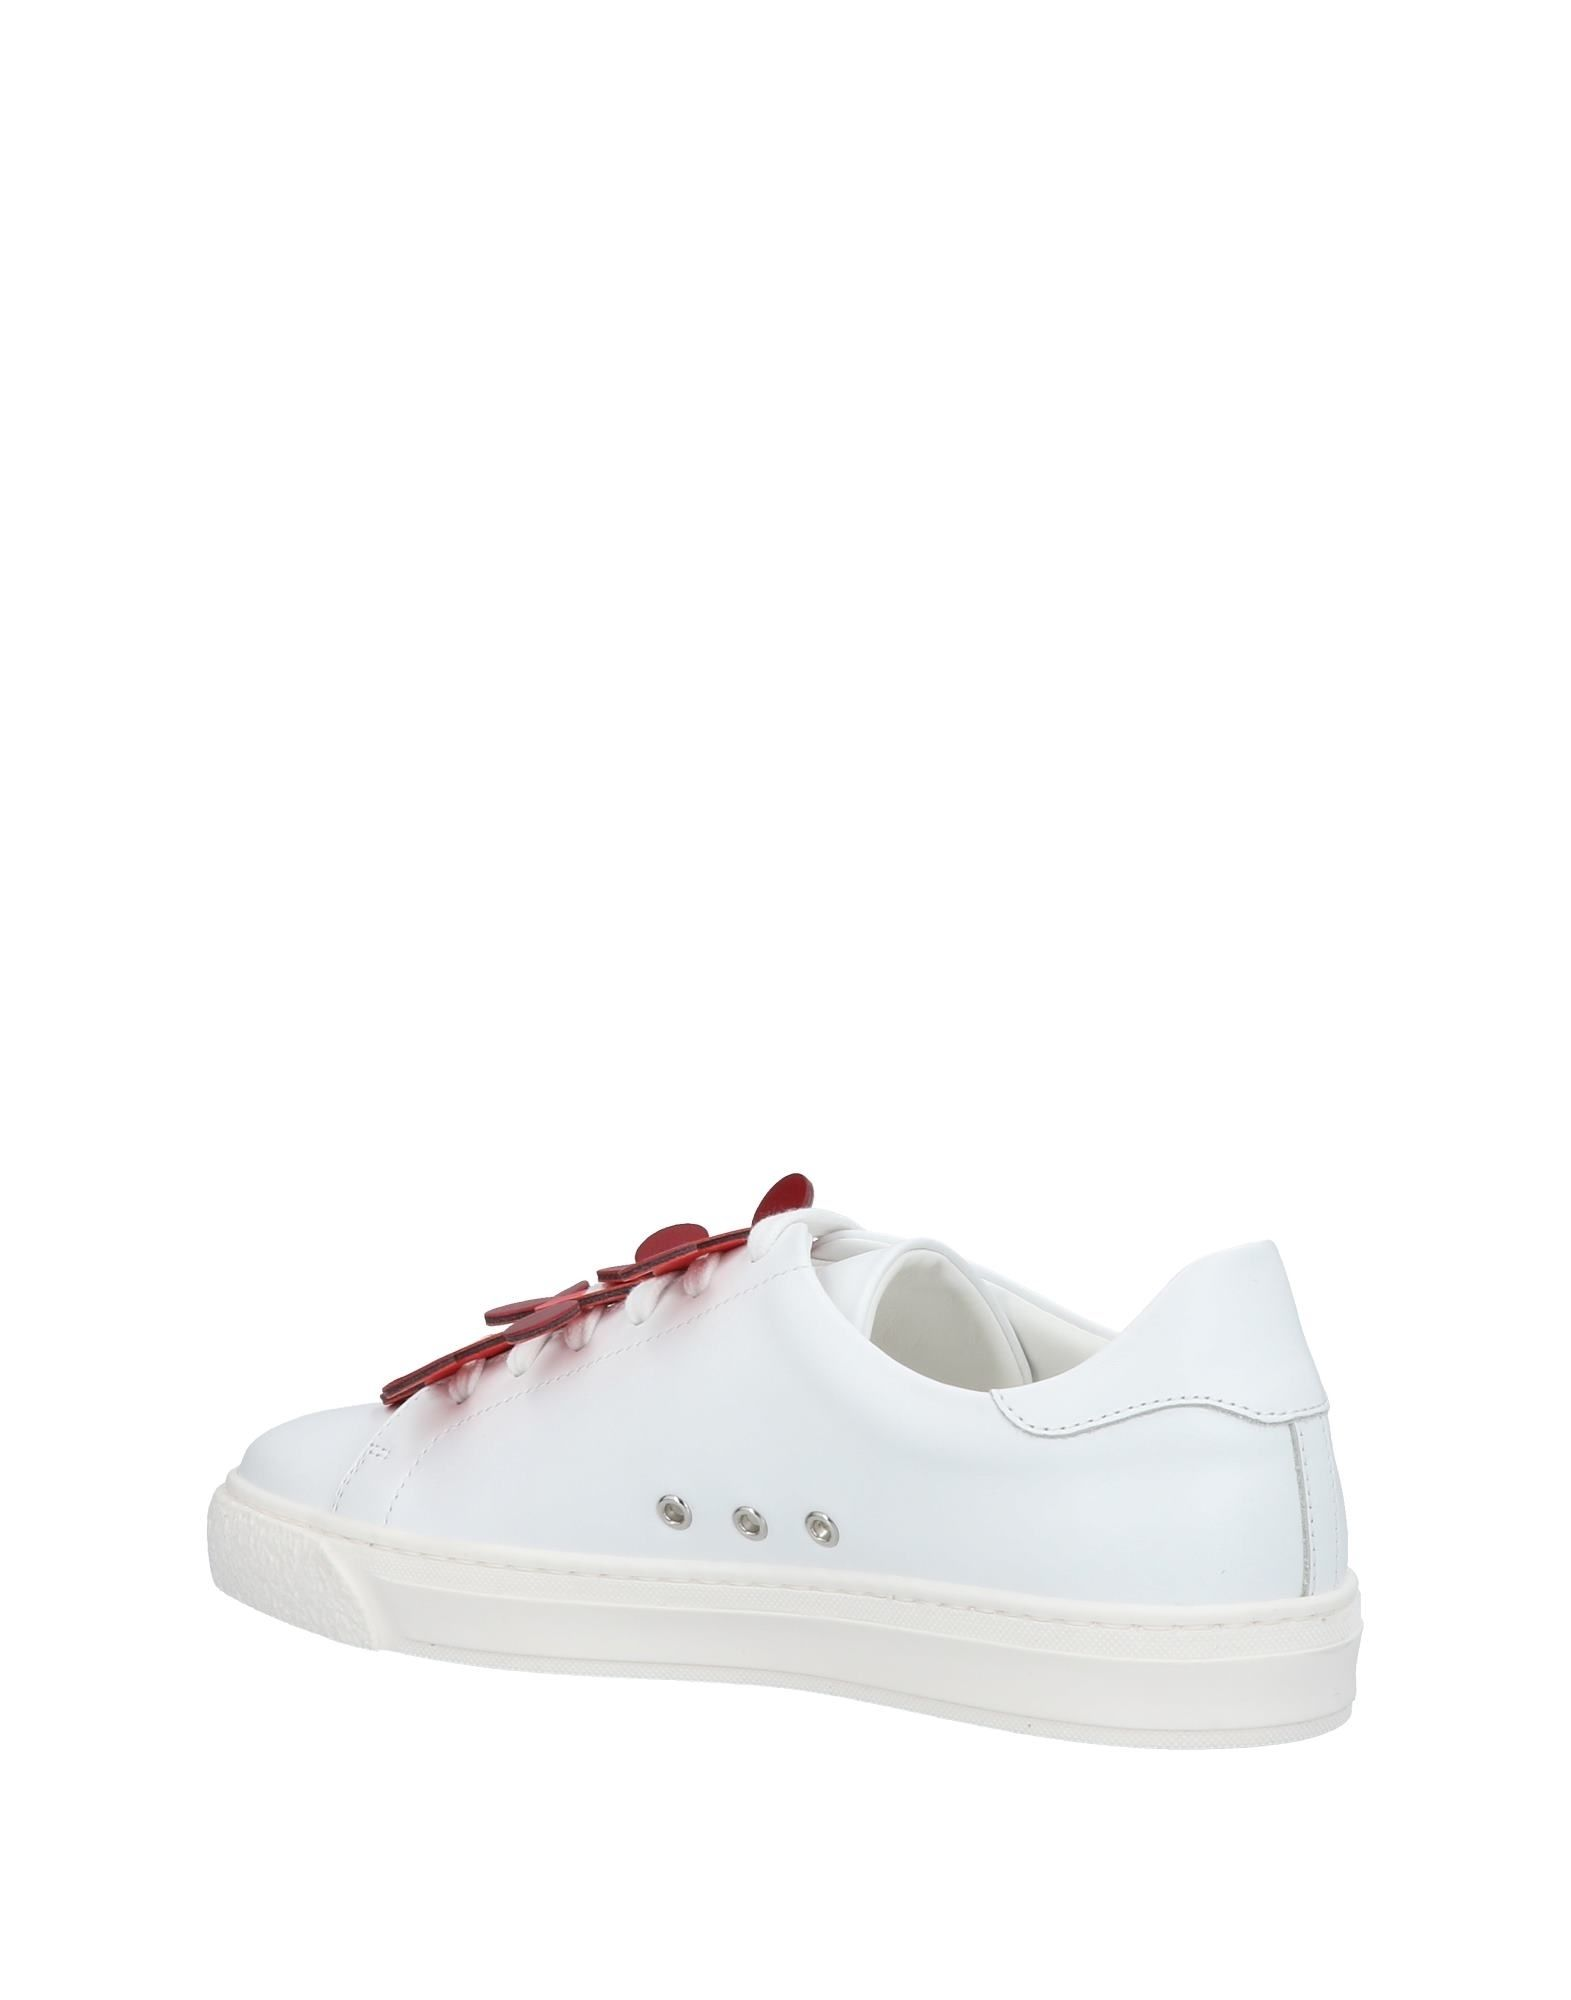 Rabatt Schuhe Sneakers Anya Hindmarch Sneakers Schuhe Damen  11431567TO 871822